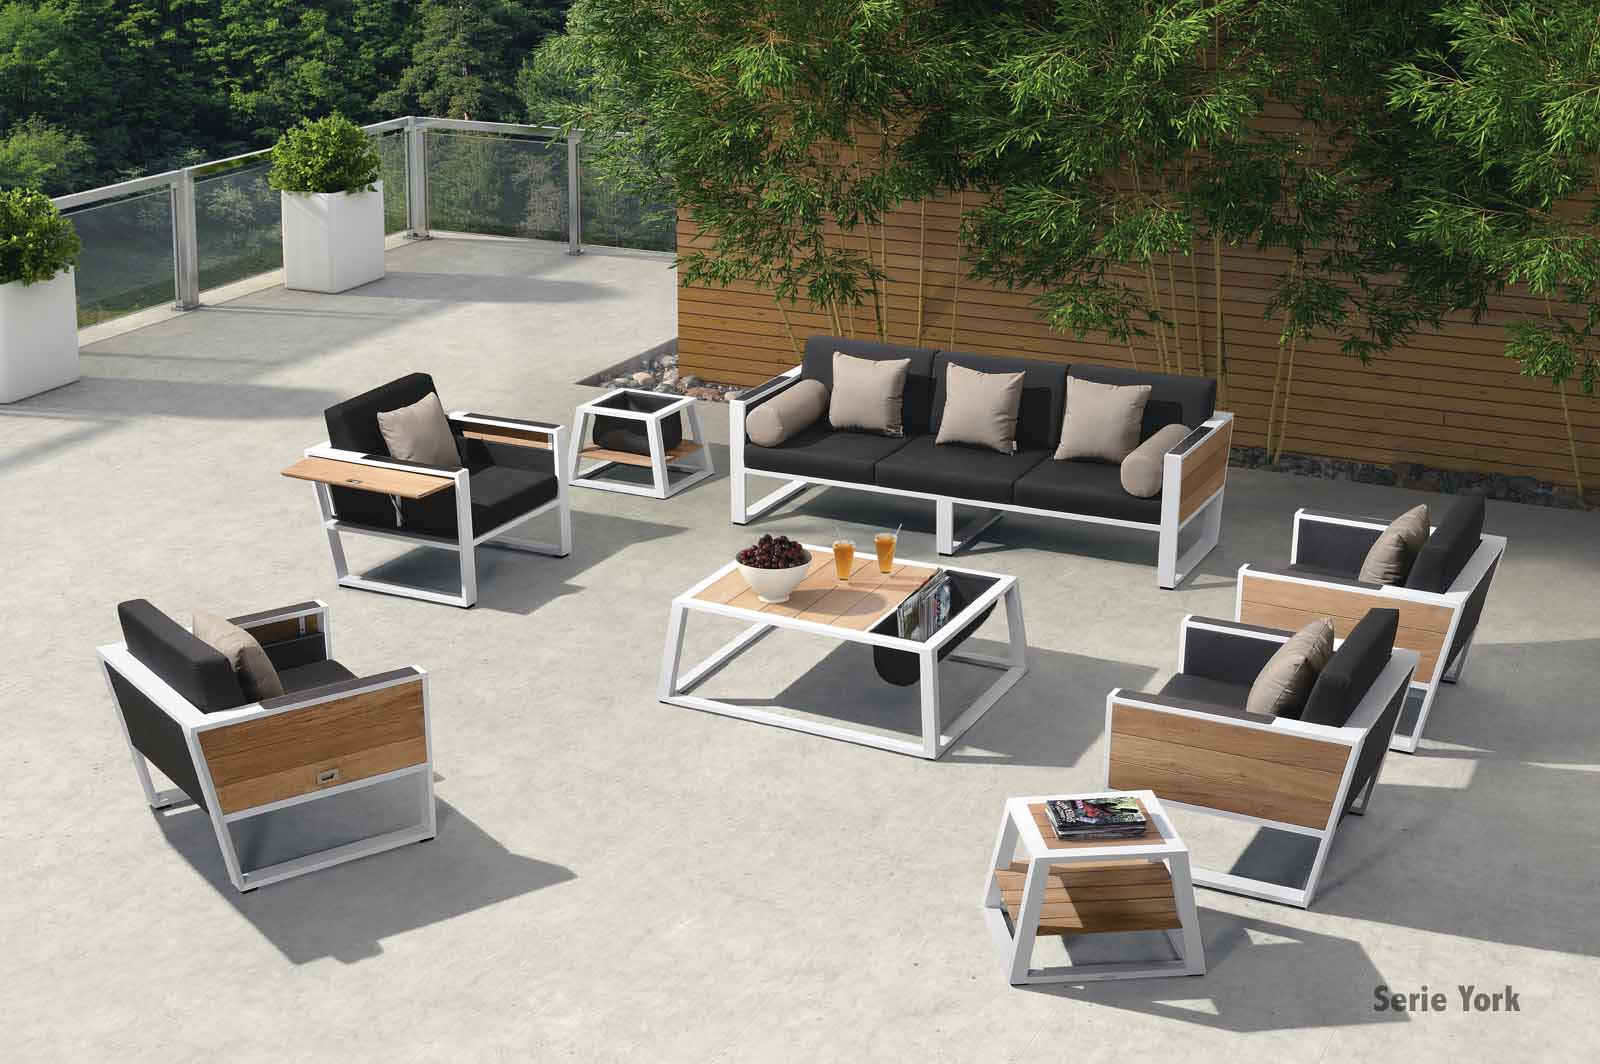 exklusive gartenm bel york garten set york higold terrassenm bel stuhlwerk eu. Black Bedroom Furniture Sets. Home Design Ideas